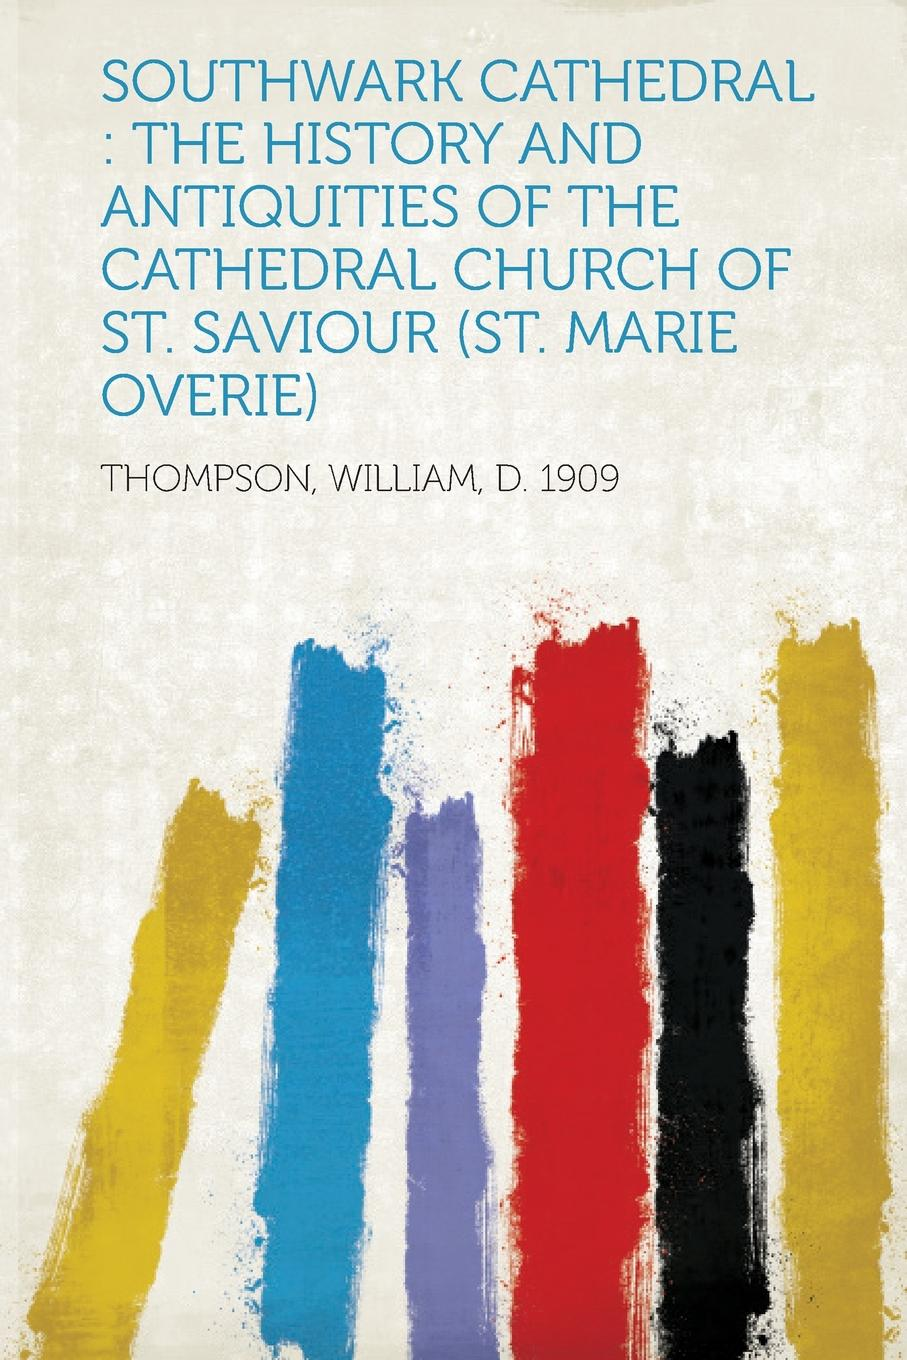 Thompson William D. 1909 Southwark Cathedral. The History and Antiquities of the Cathedral Church of St. Saviour (St. Marie Overie) thomas abingdon the antiquities of the cathedral church of worcester to which are added the antiquities of the cathedral churches of chichester and lichfeld